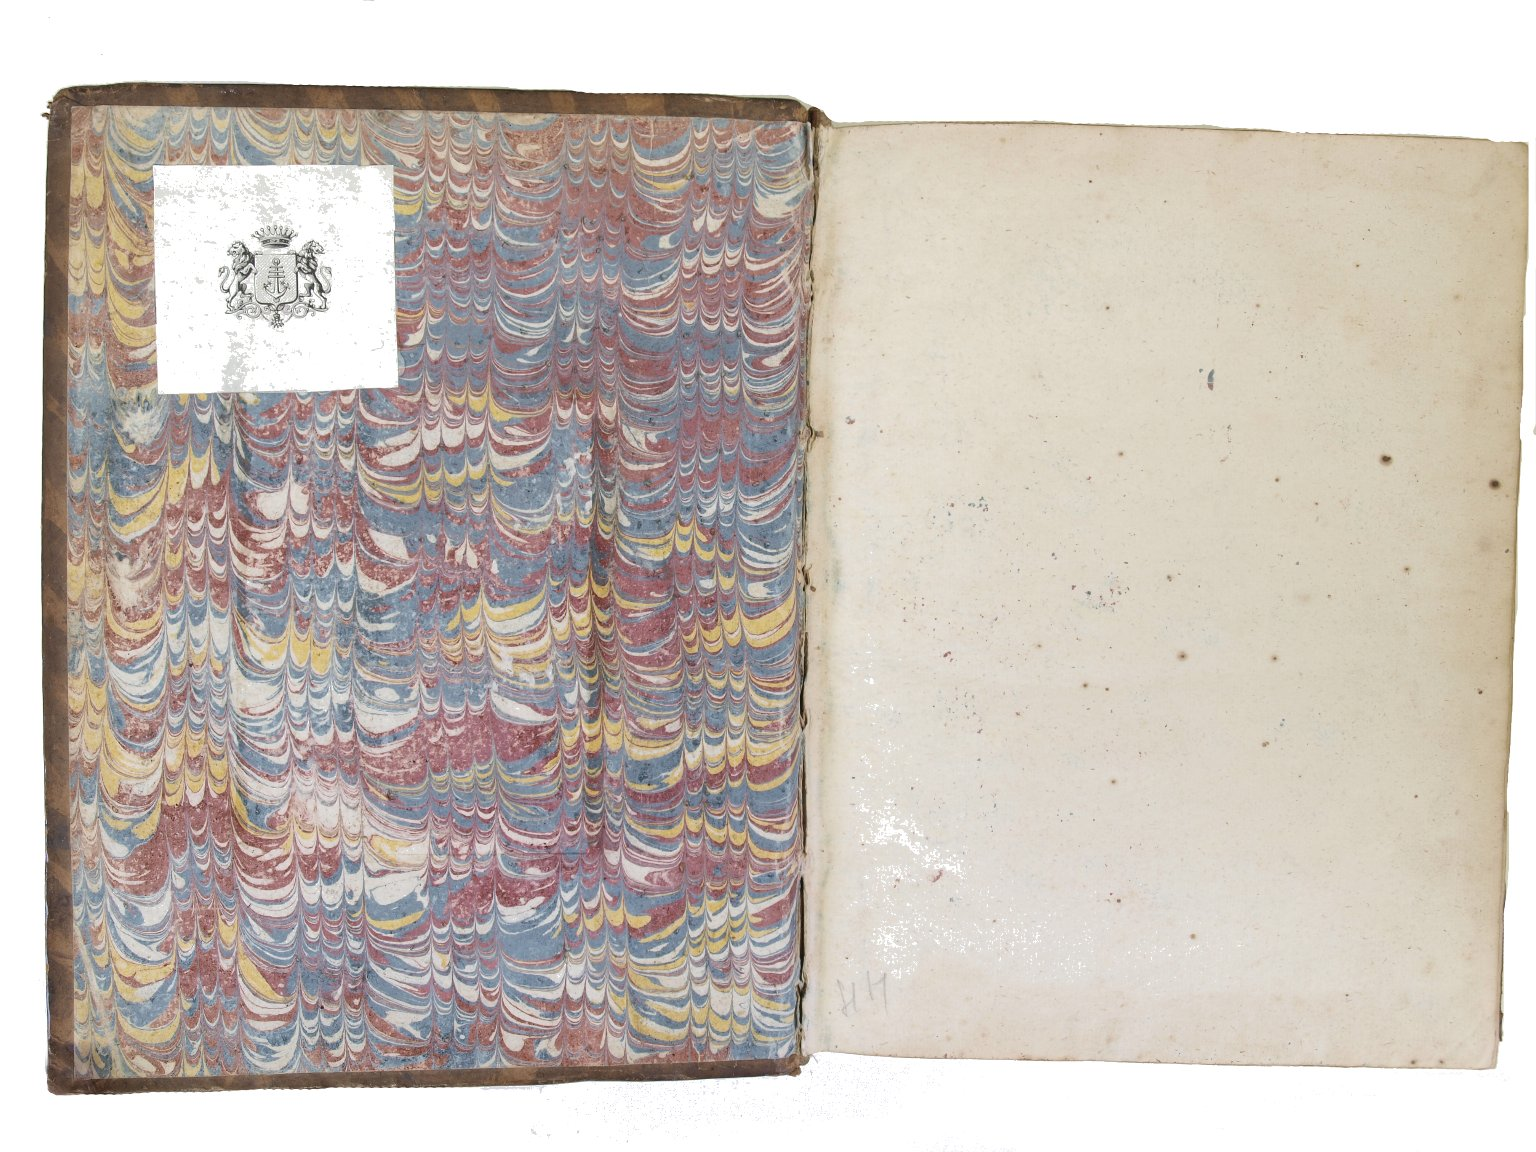 Inside front cover marble paper, PC2103 V29 1663 cage.